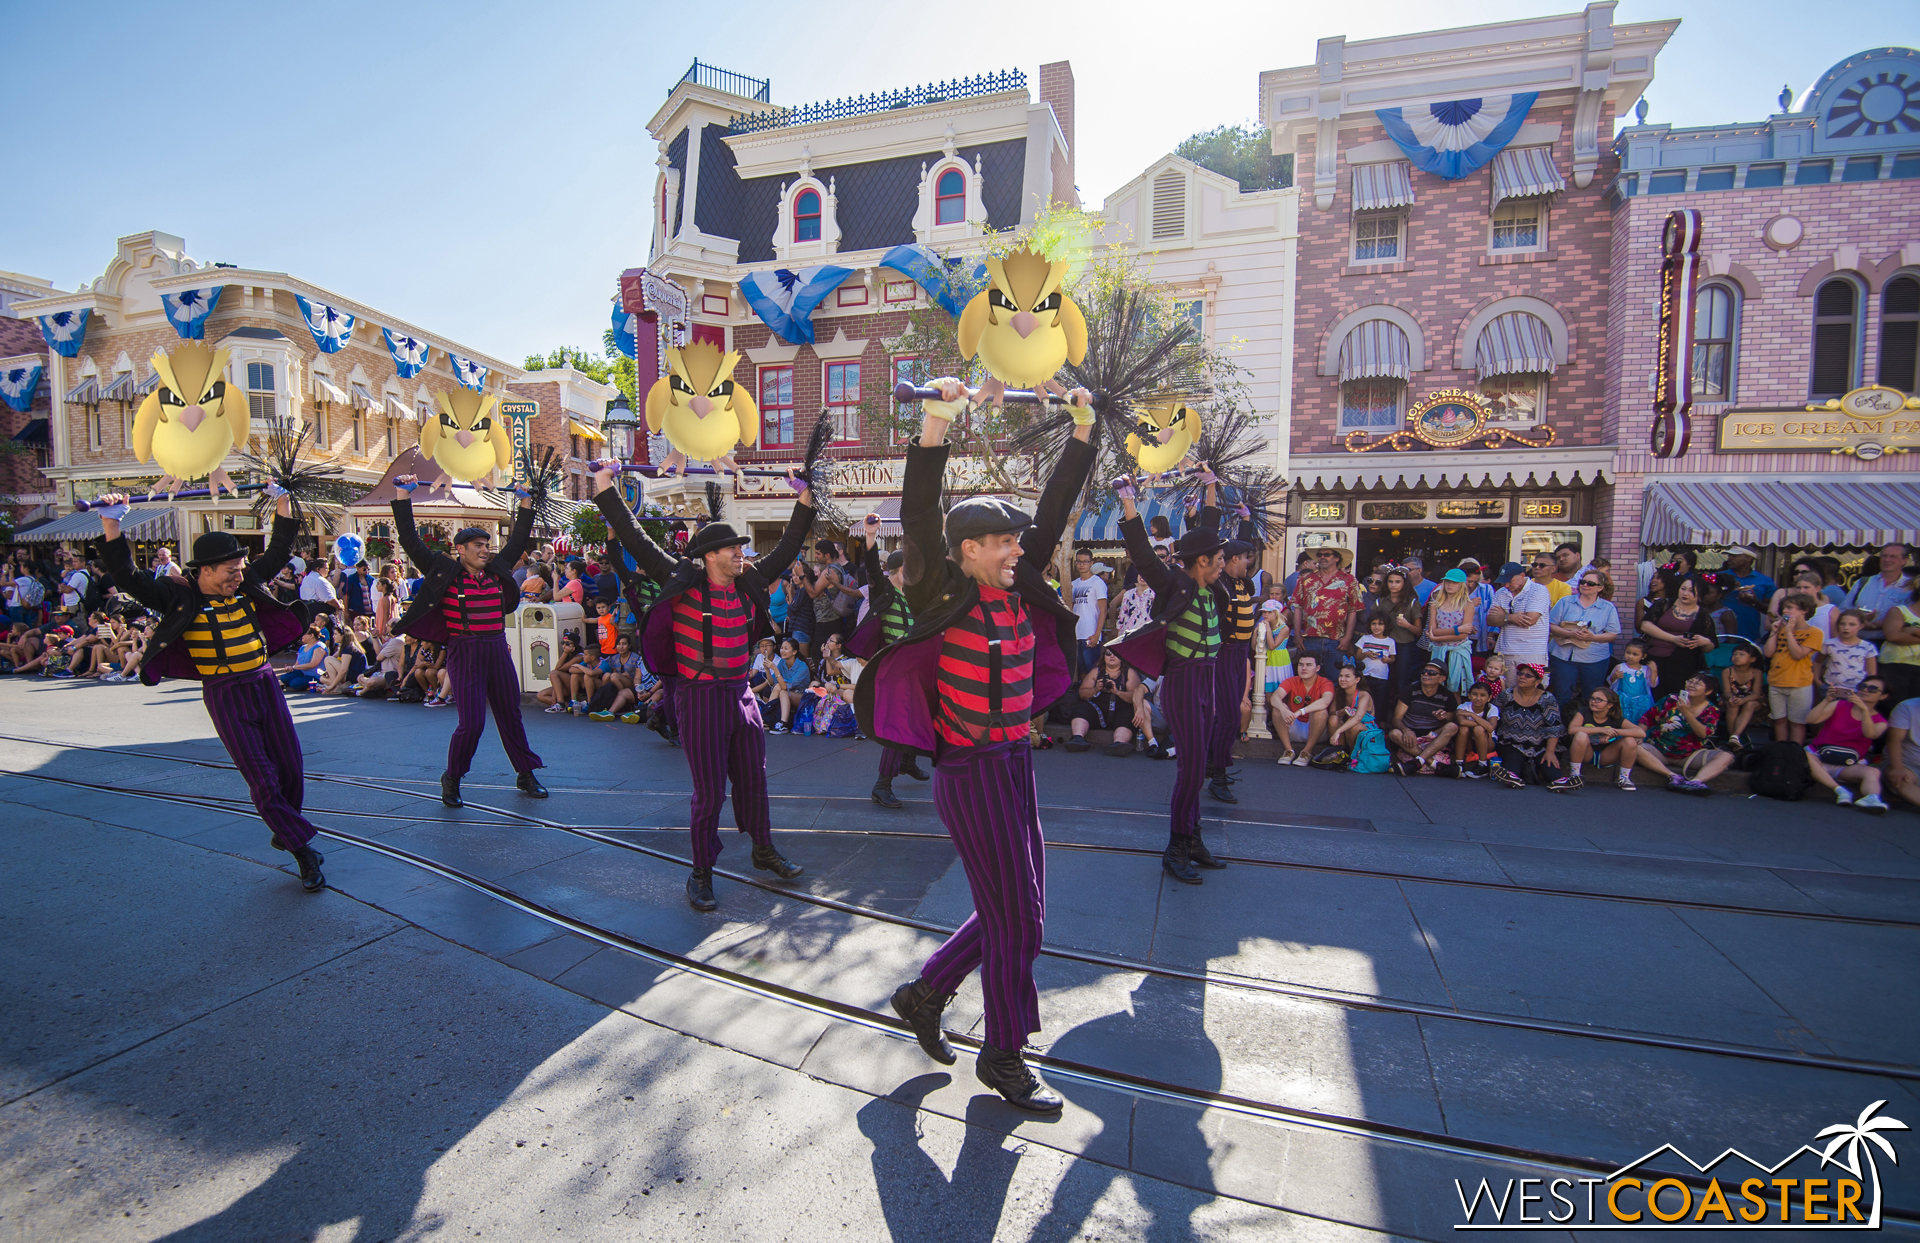 Mickey's Soundsational parade, though?  Seems like it's not going anywhere.